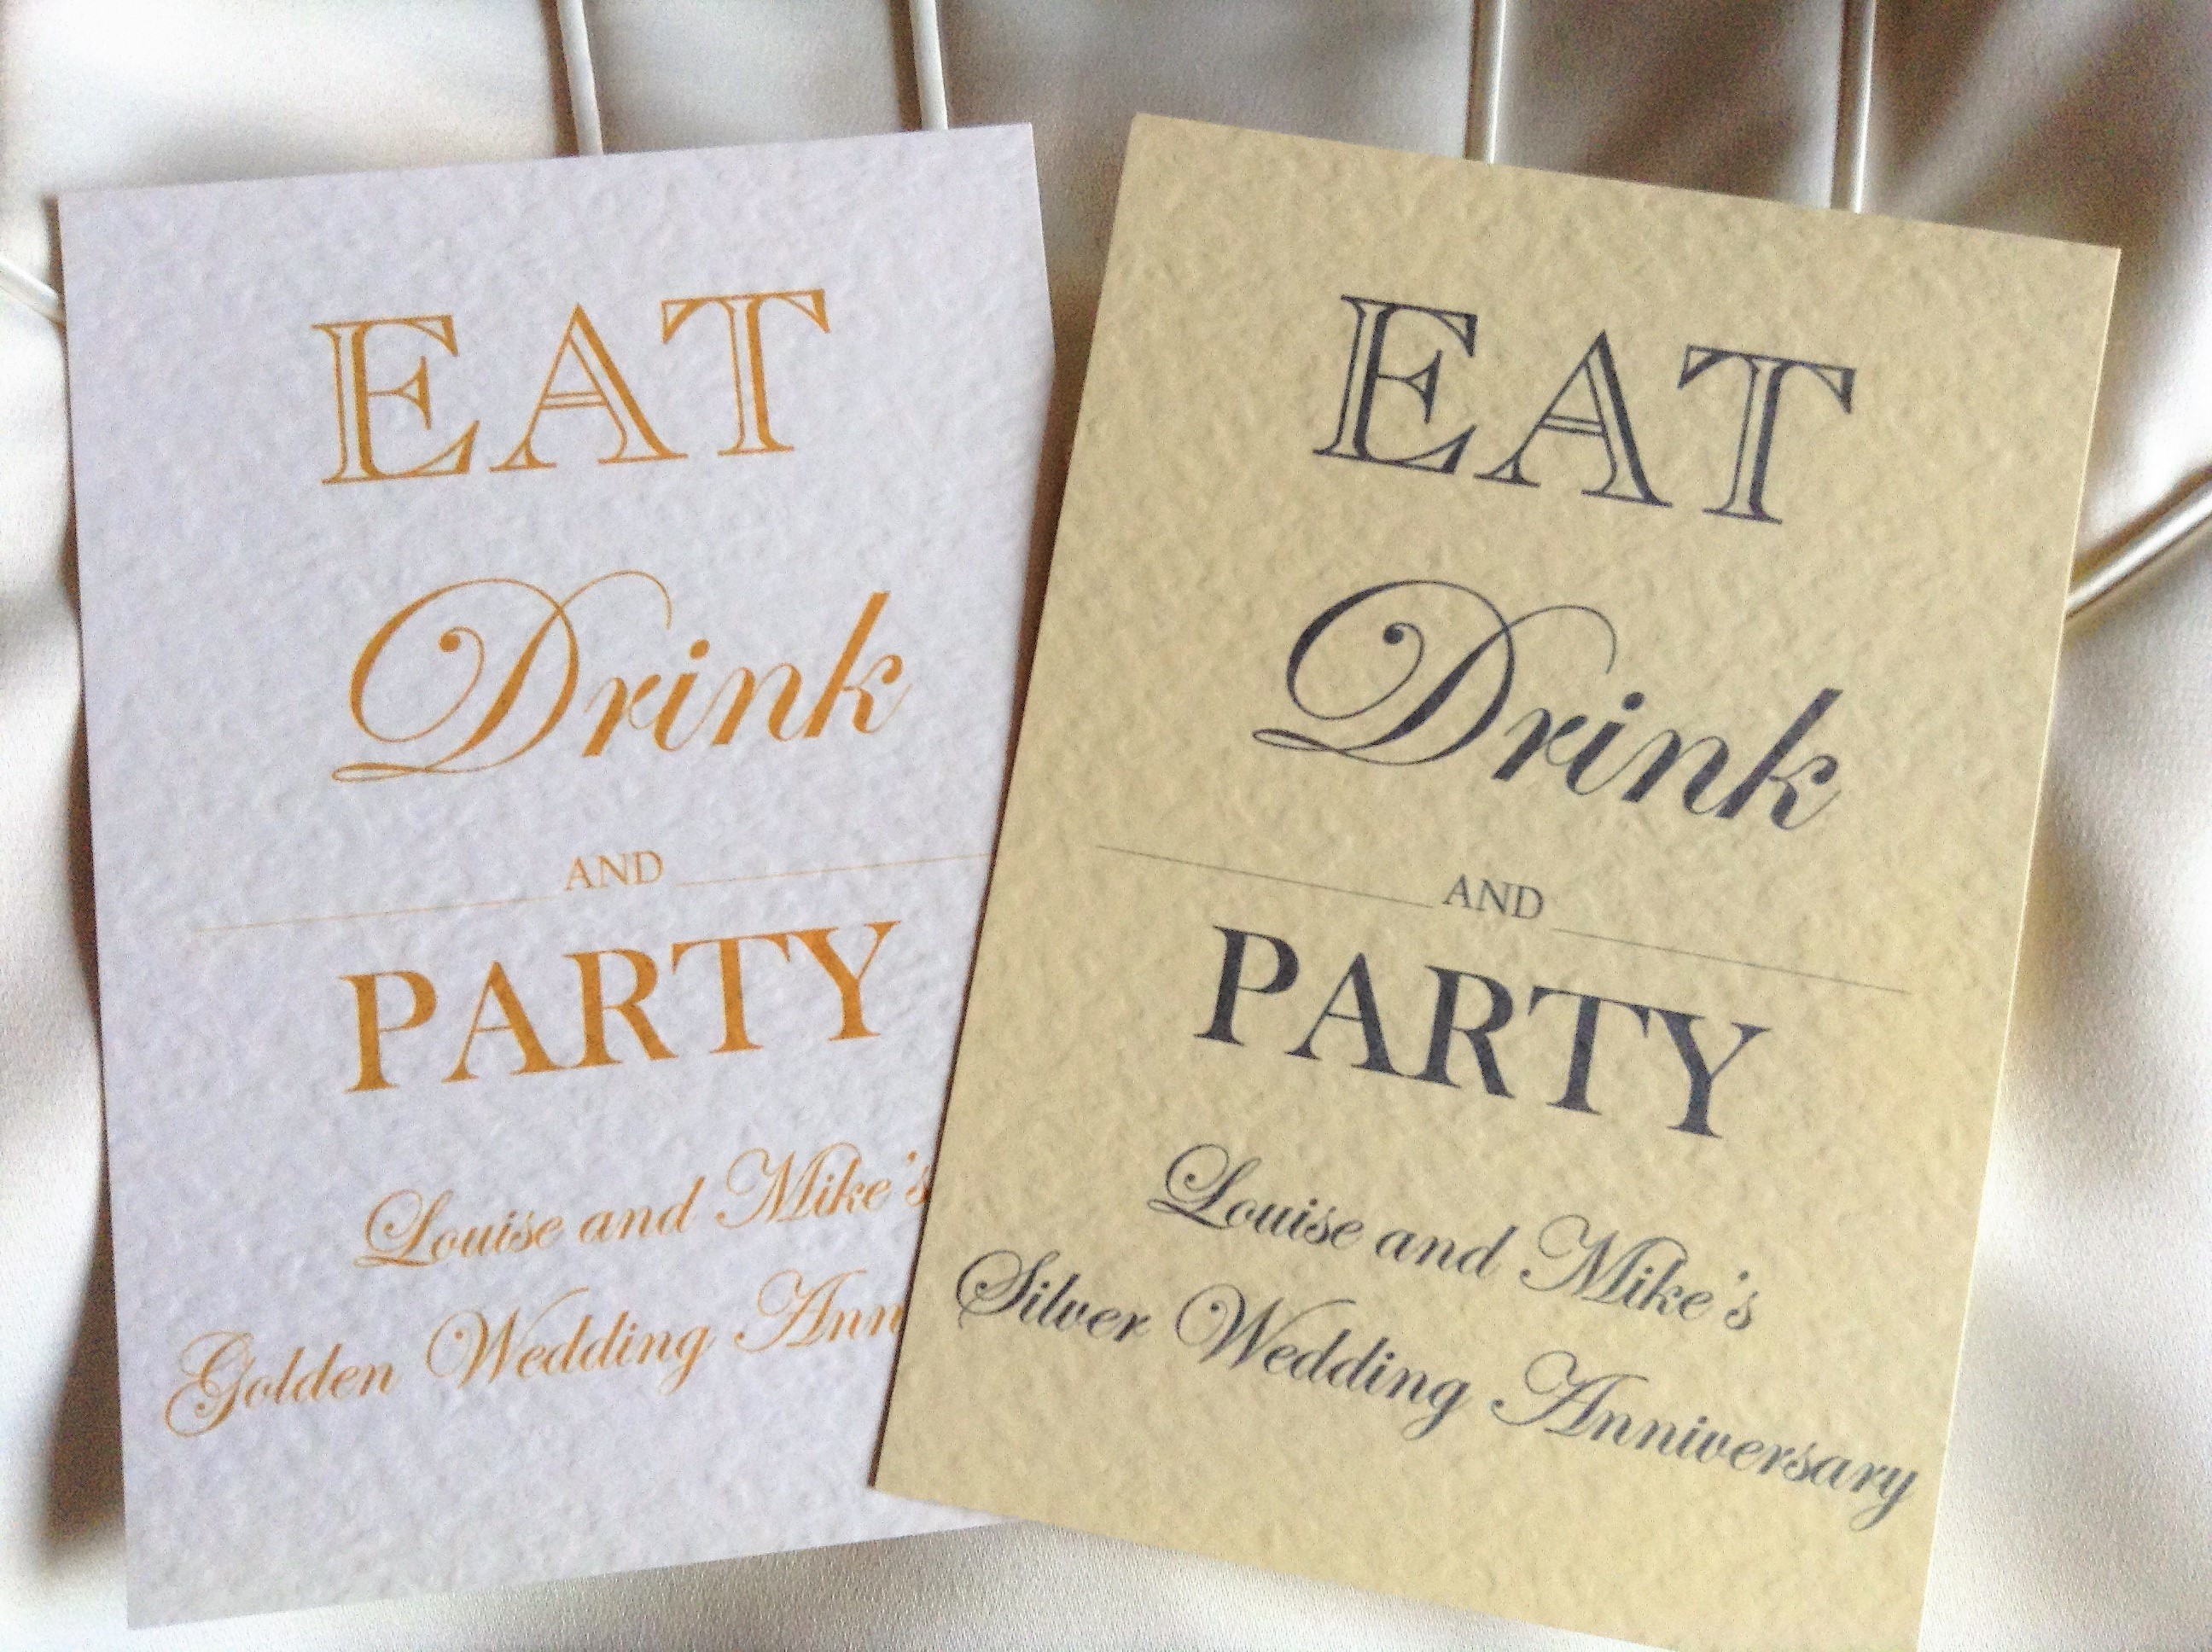 Eat drink and party wedding anniversary invitations - Wedding anniversary invitations ...